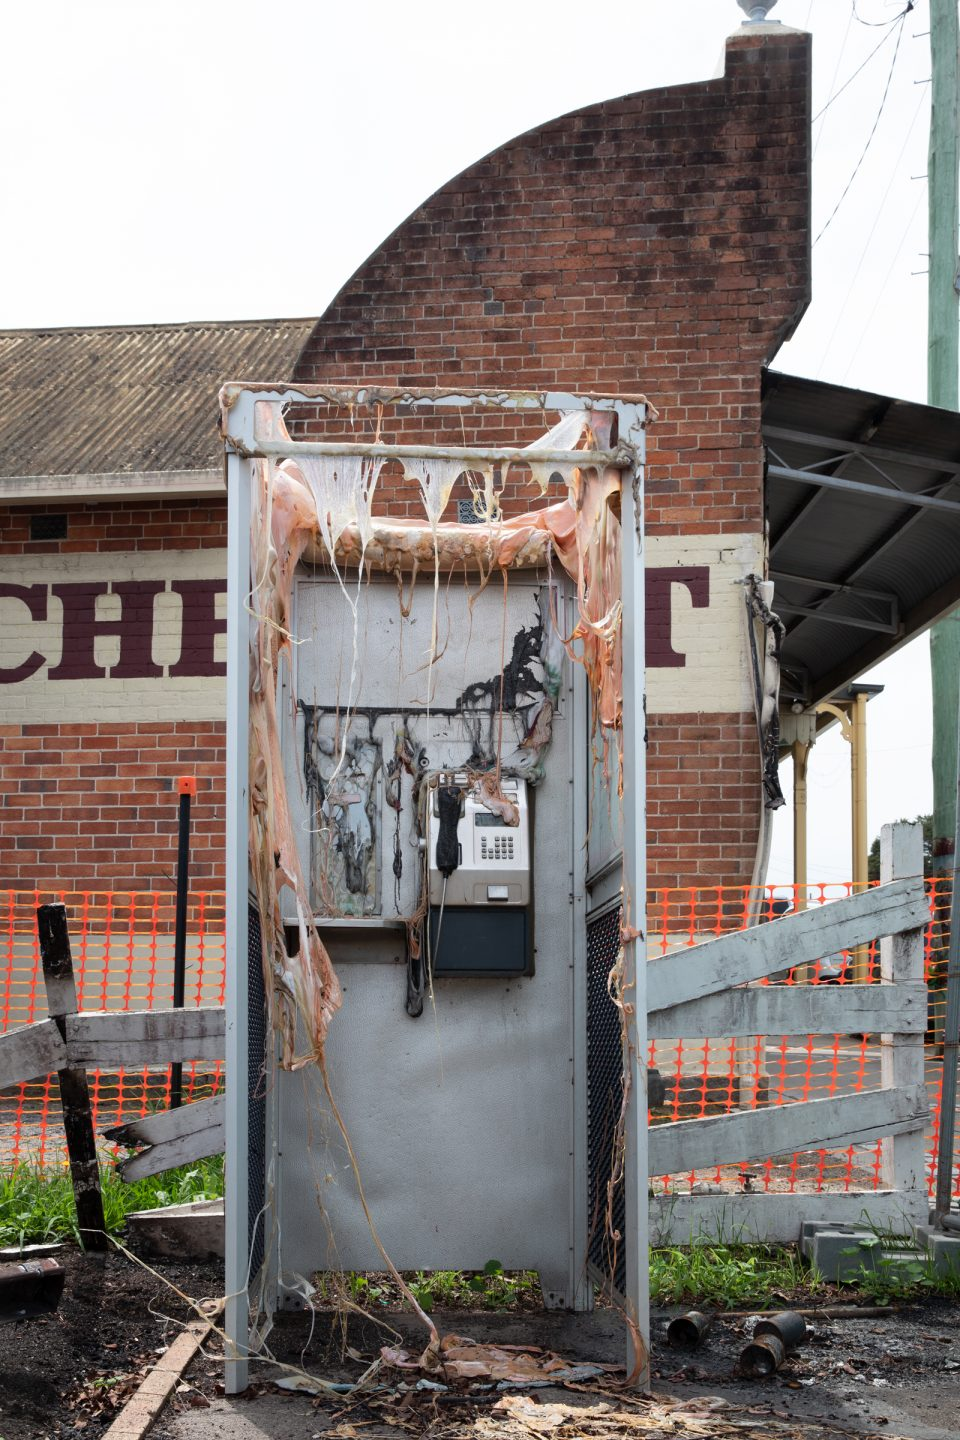 Payphone that's affected by bushfire.